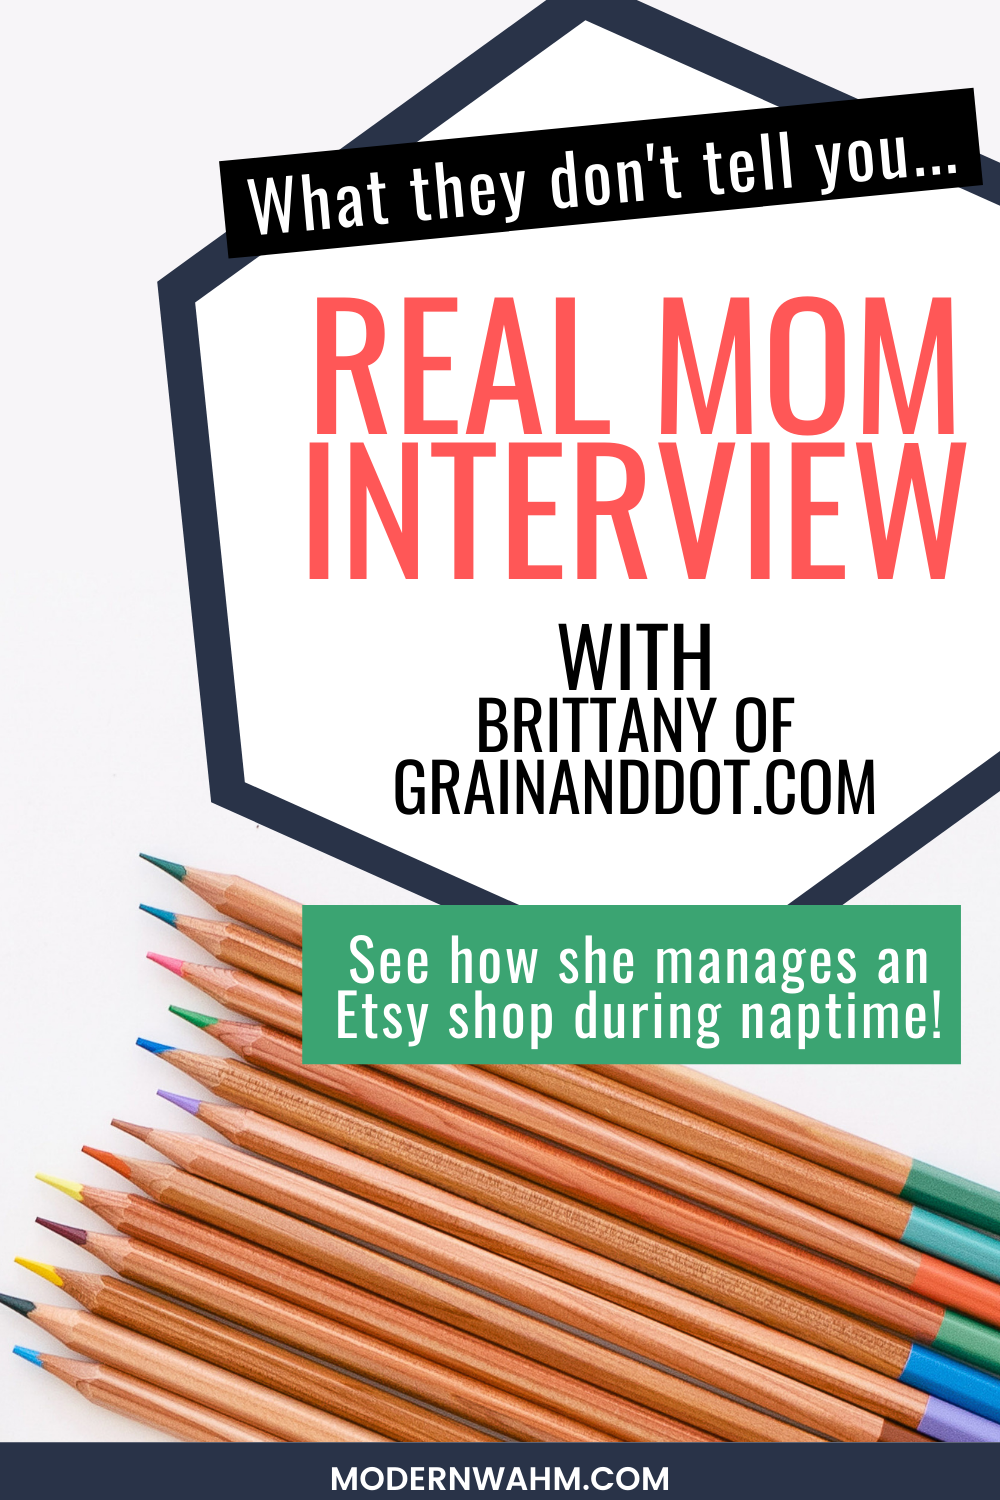 What they don\'t tell you: How to open an Etsy Shop during Nap Time with Grain + Dot